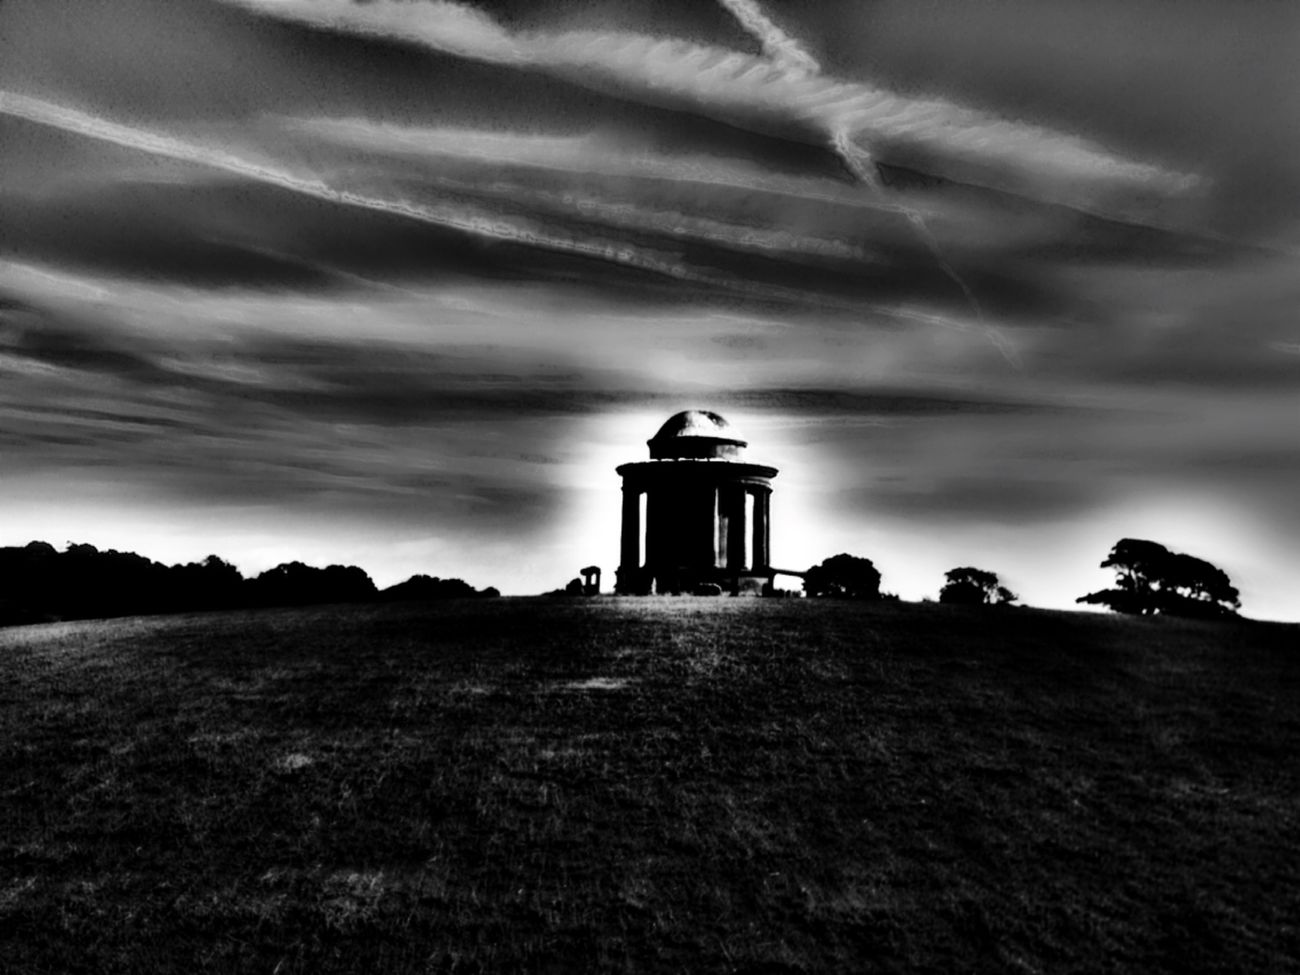 Abandoned adult playhouse English Countryside Untold Stories Dark Fairytale Sacred Places Skyporn Blackandwhite Darkness And Light Open Edit EyeEm_abandonment